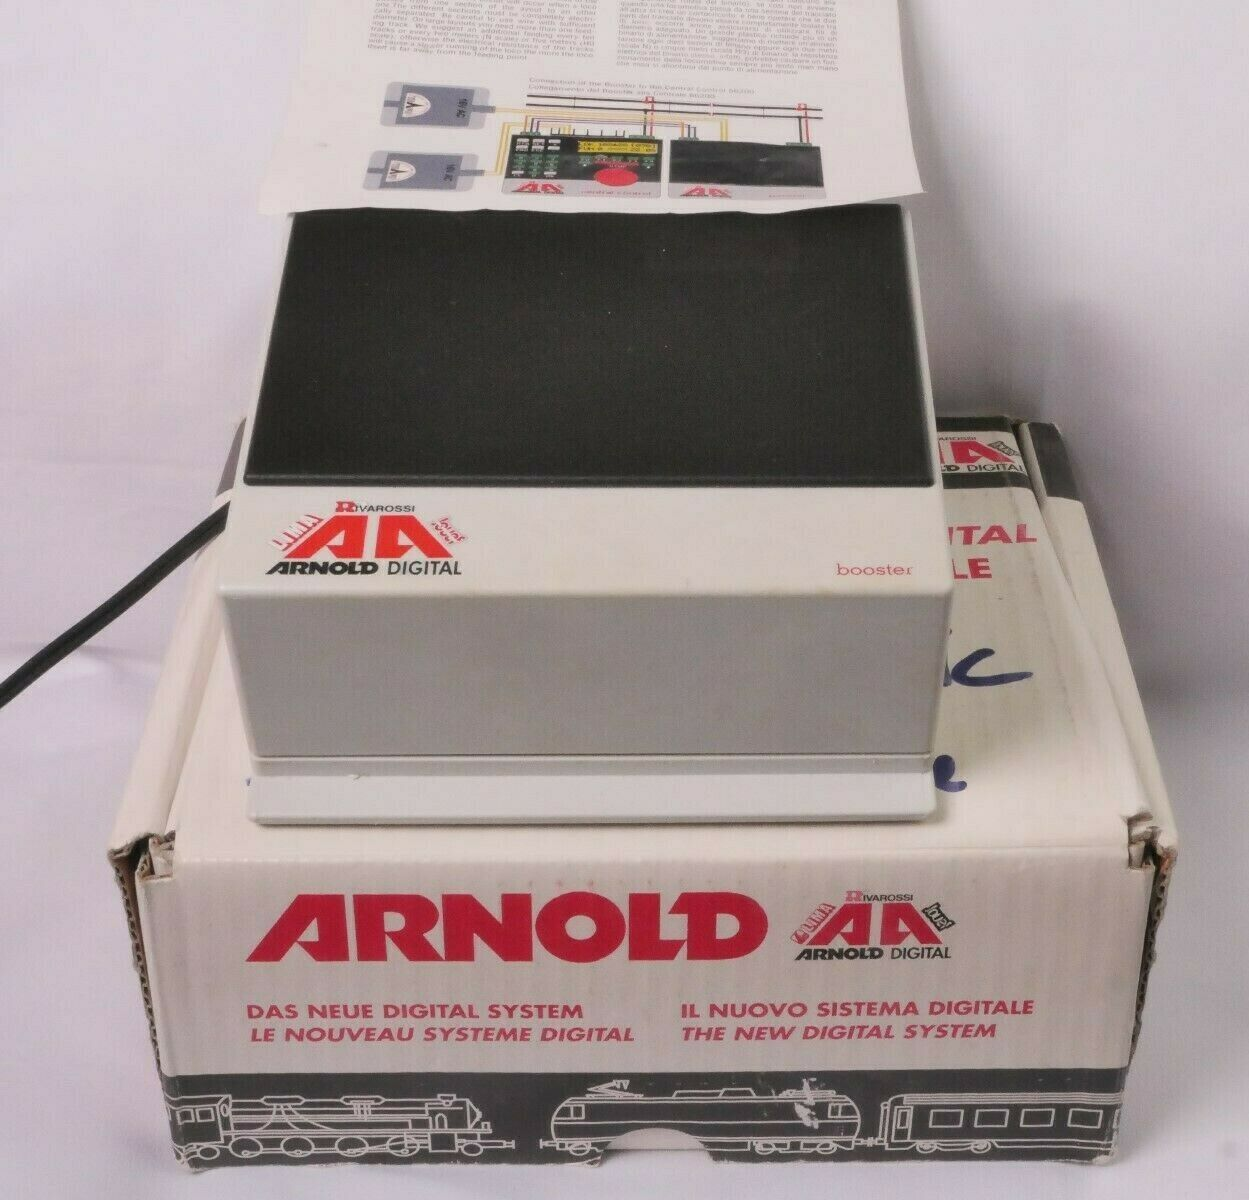 Arnold N 86205 DCC-Booster 3A, sehr guter Zustand